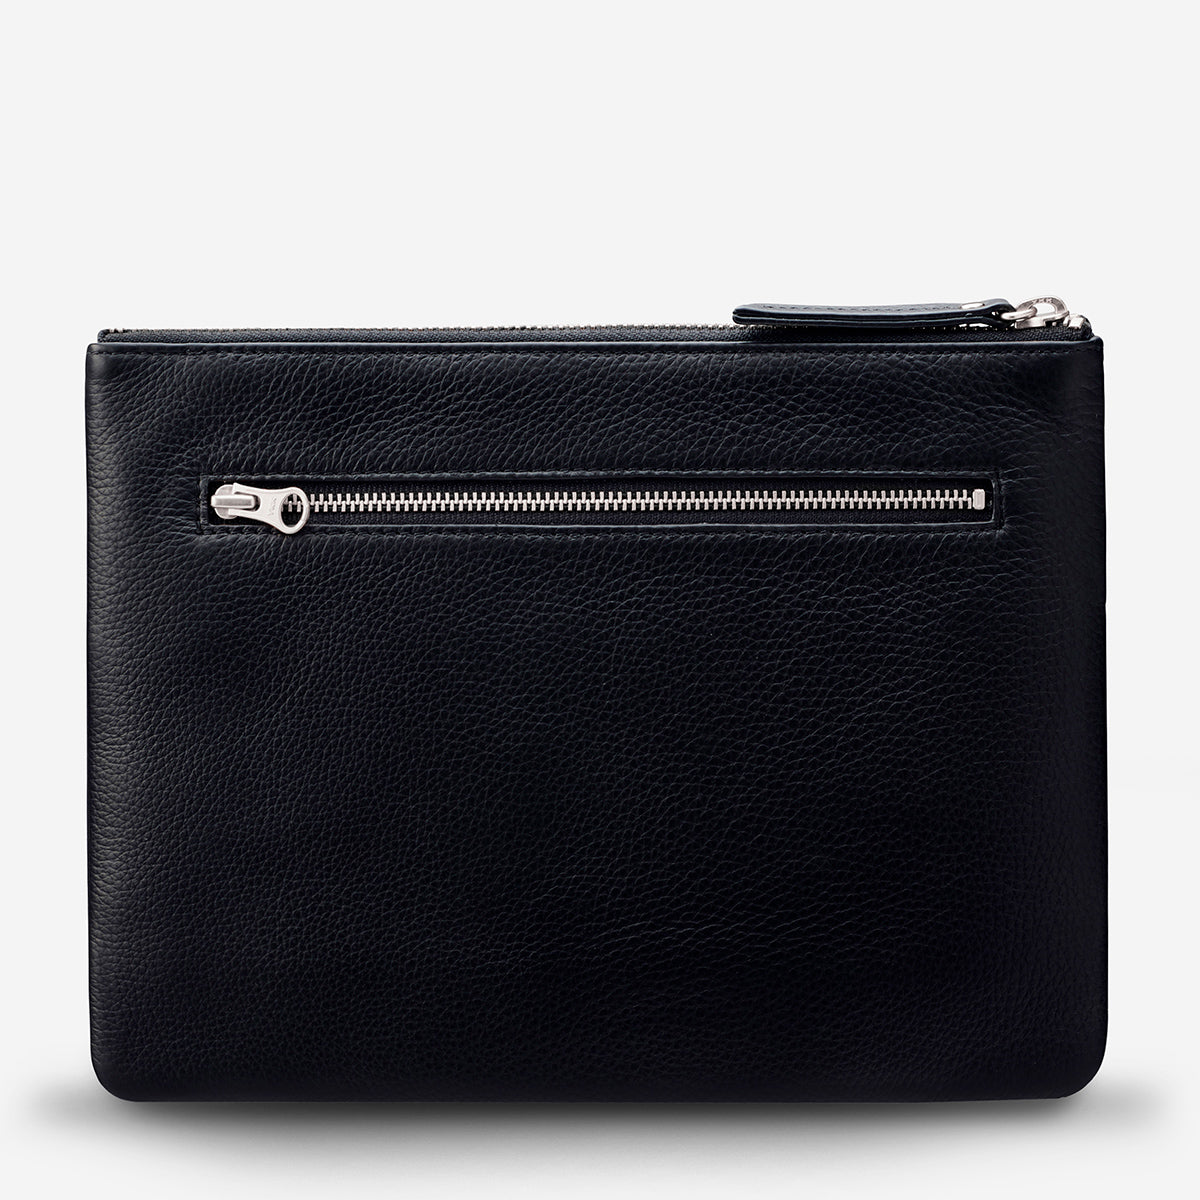 Status Anxiety Fake It Women's Leather Clutch Wallet Black